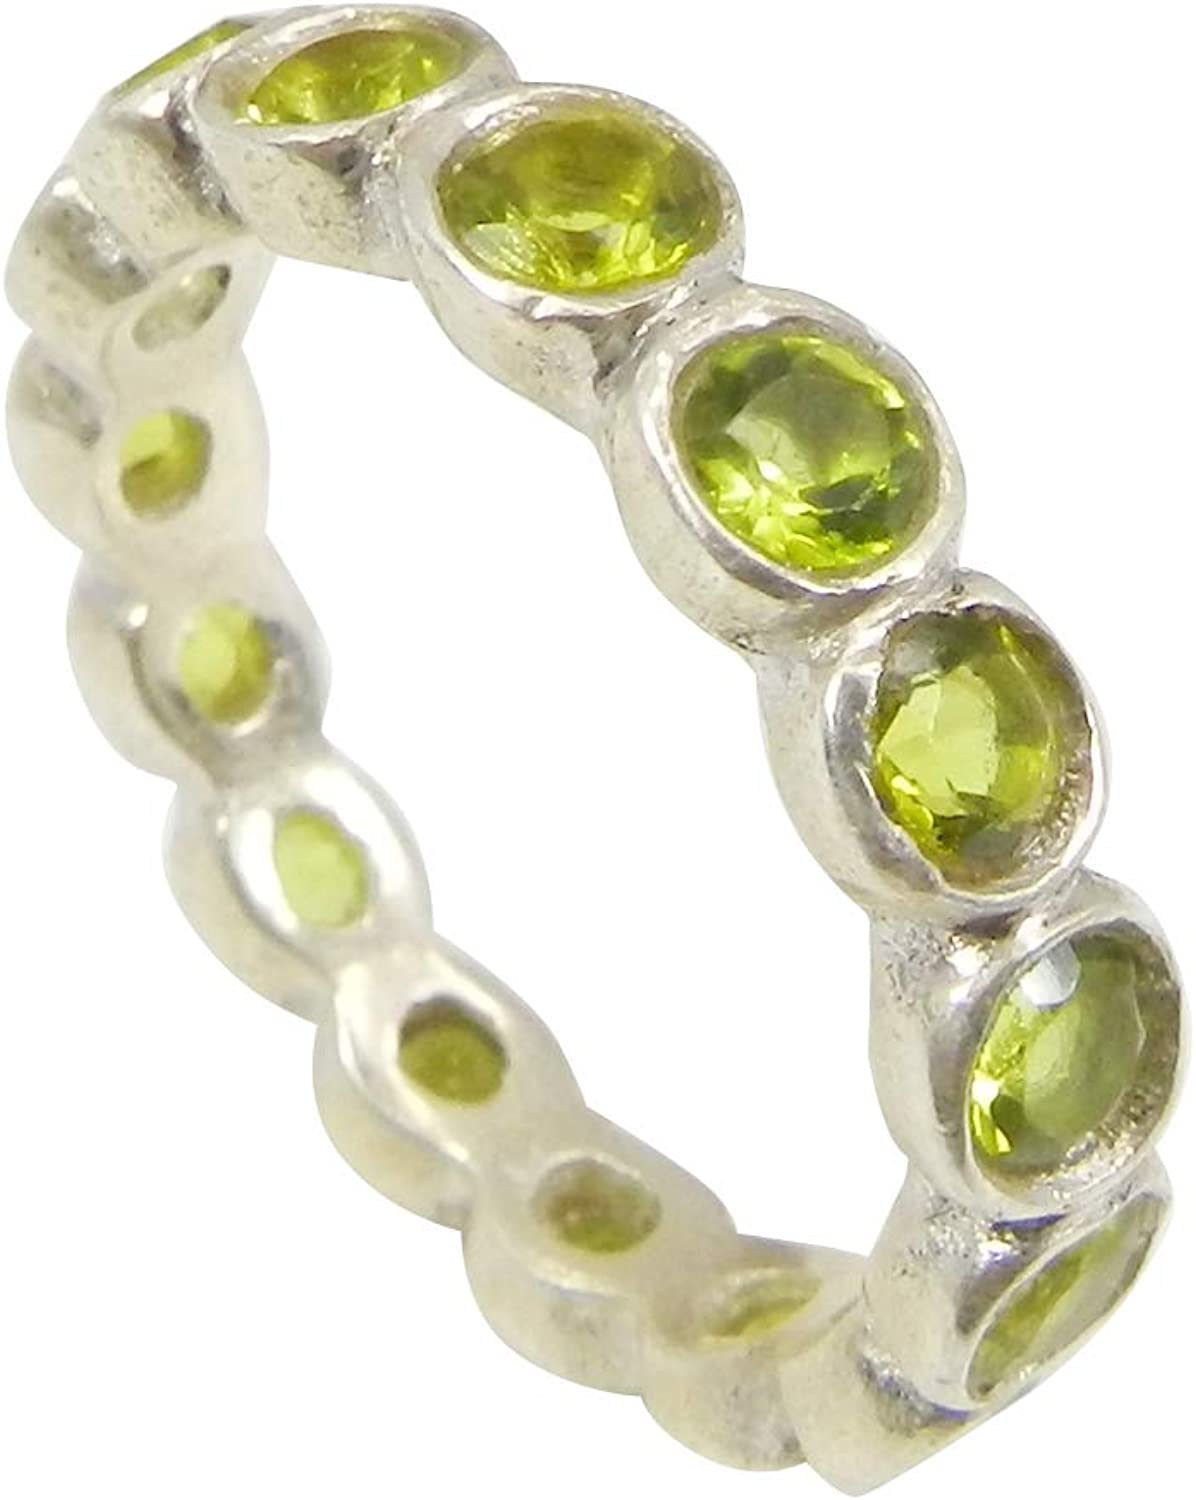 Shilpi Impex 925 Sterling Silver Stackable Bezel Set Eternity Peridot Gemstone Ring Jewelry